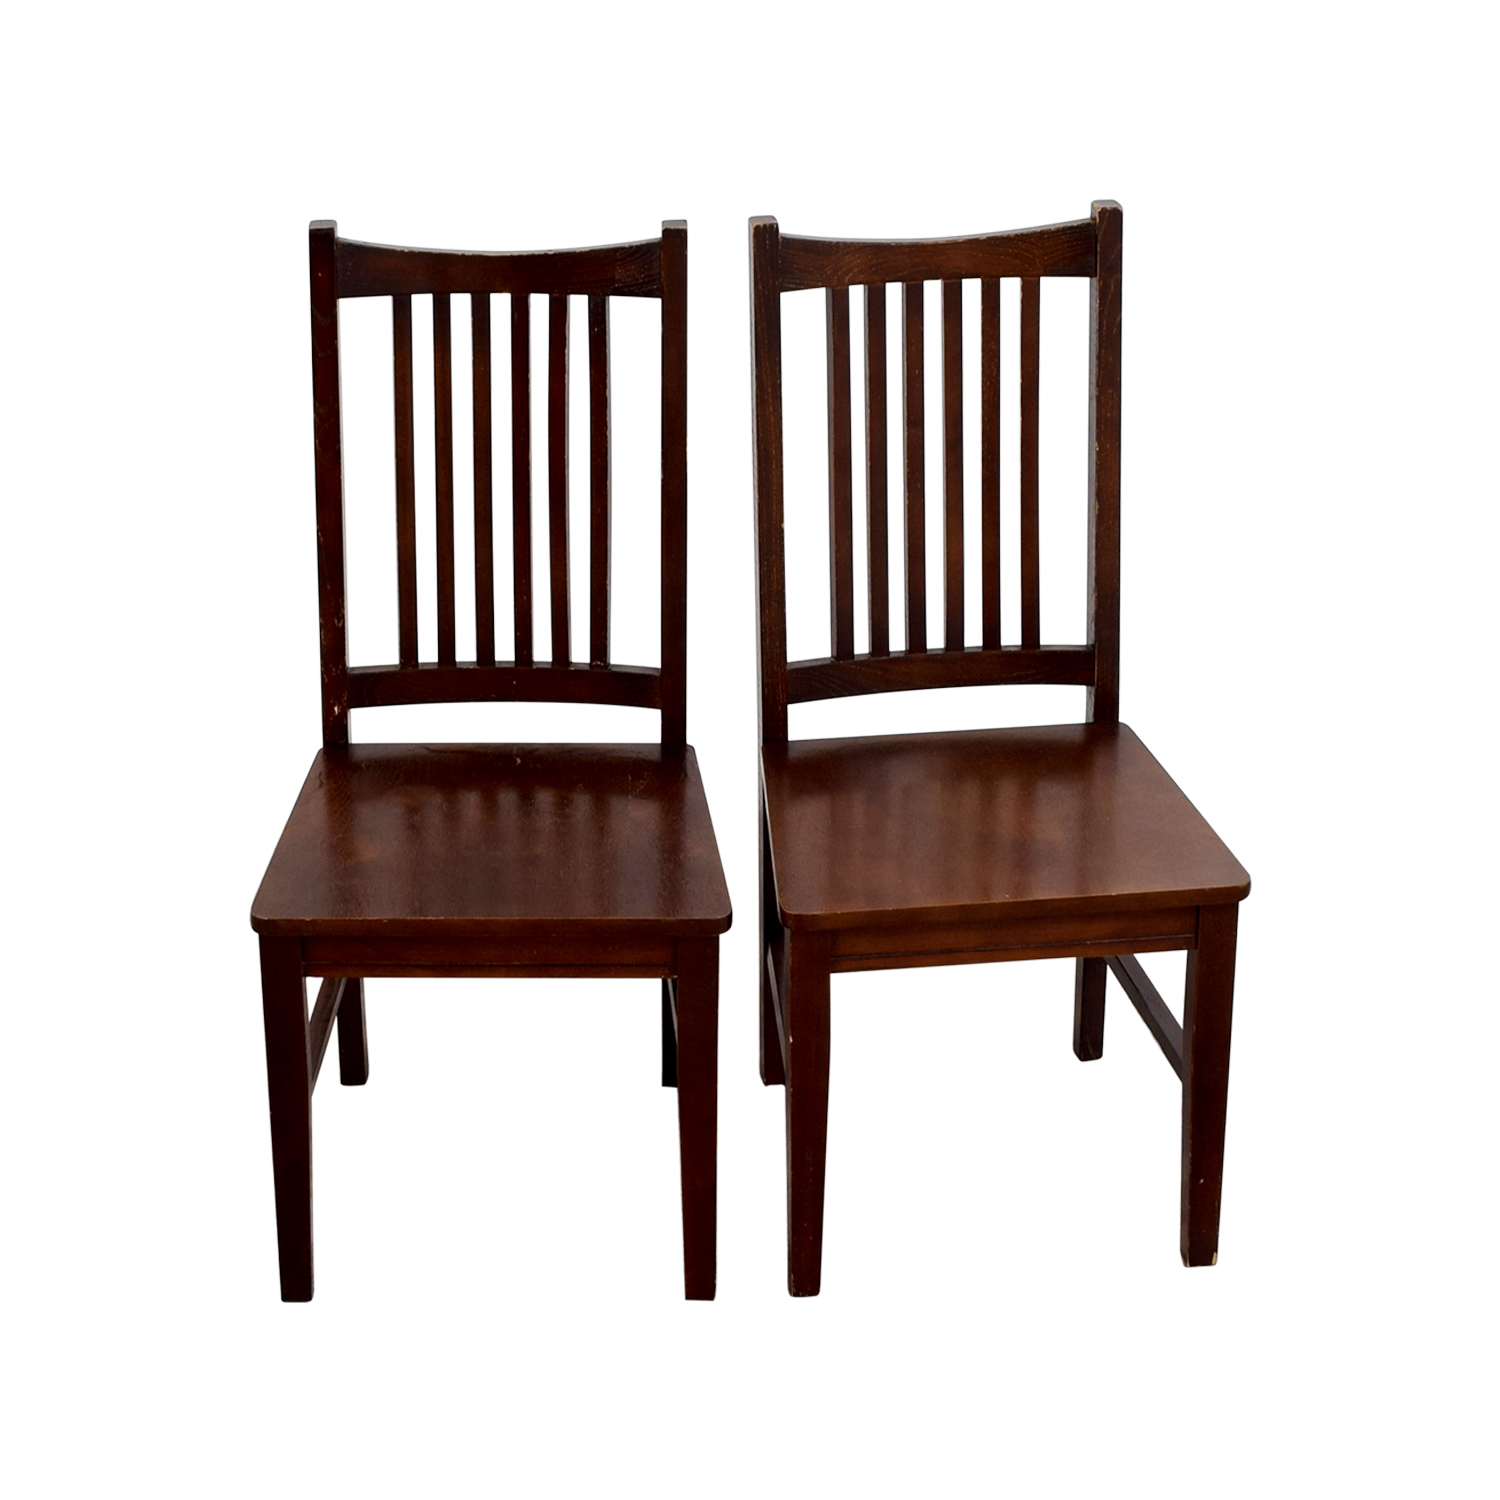 Off classic solid wood chairs